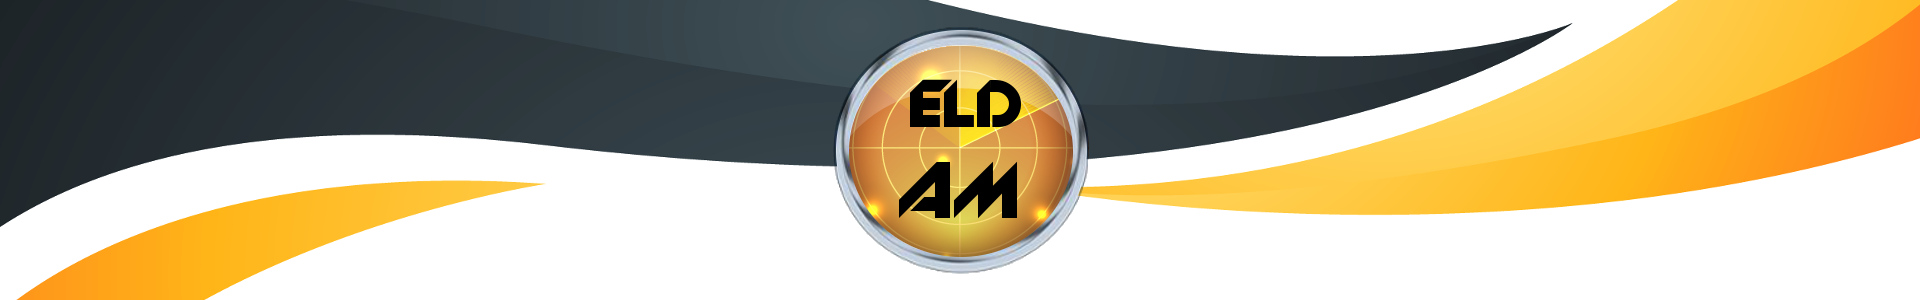 Eld Access Management